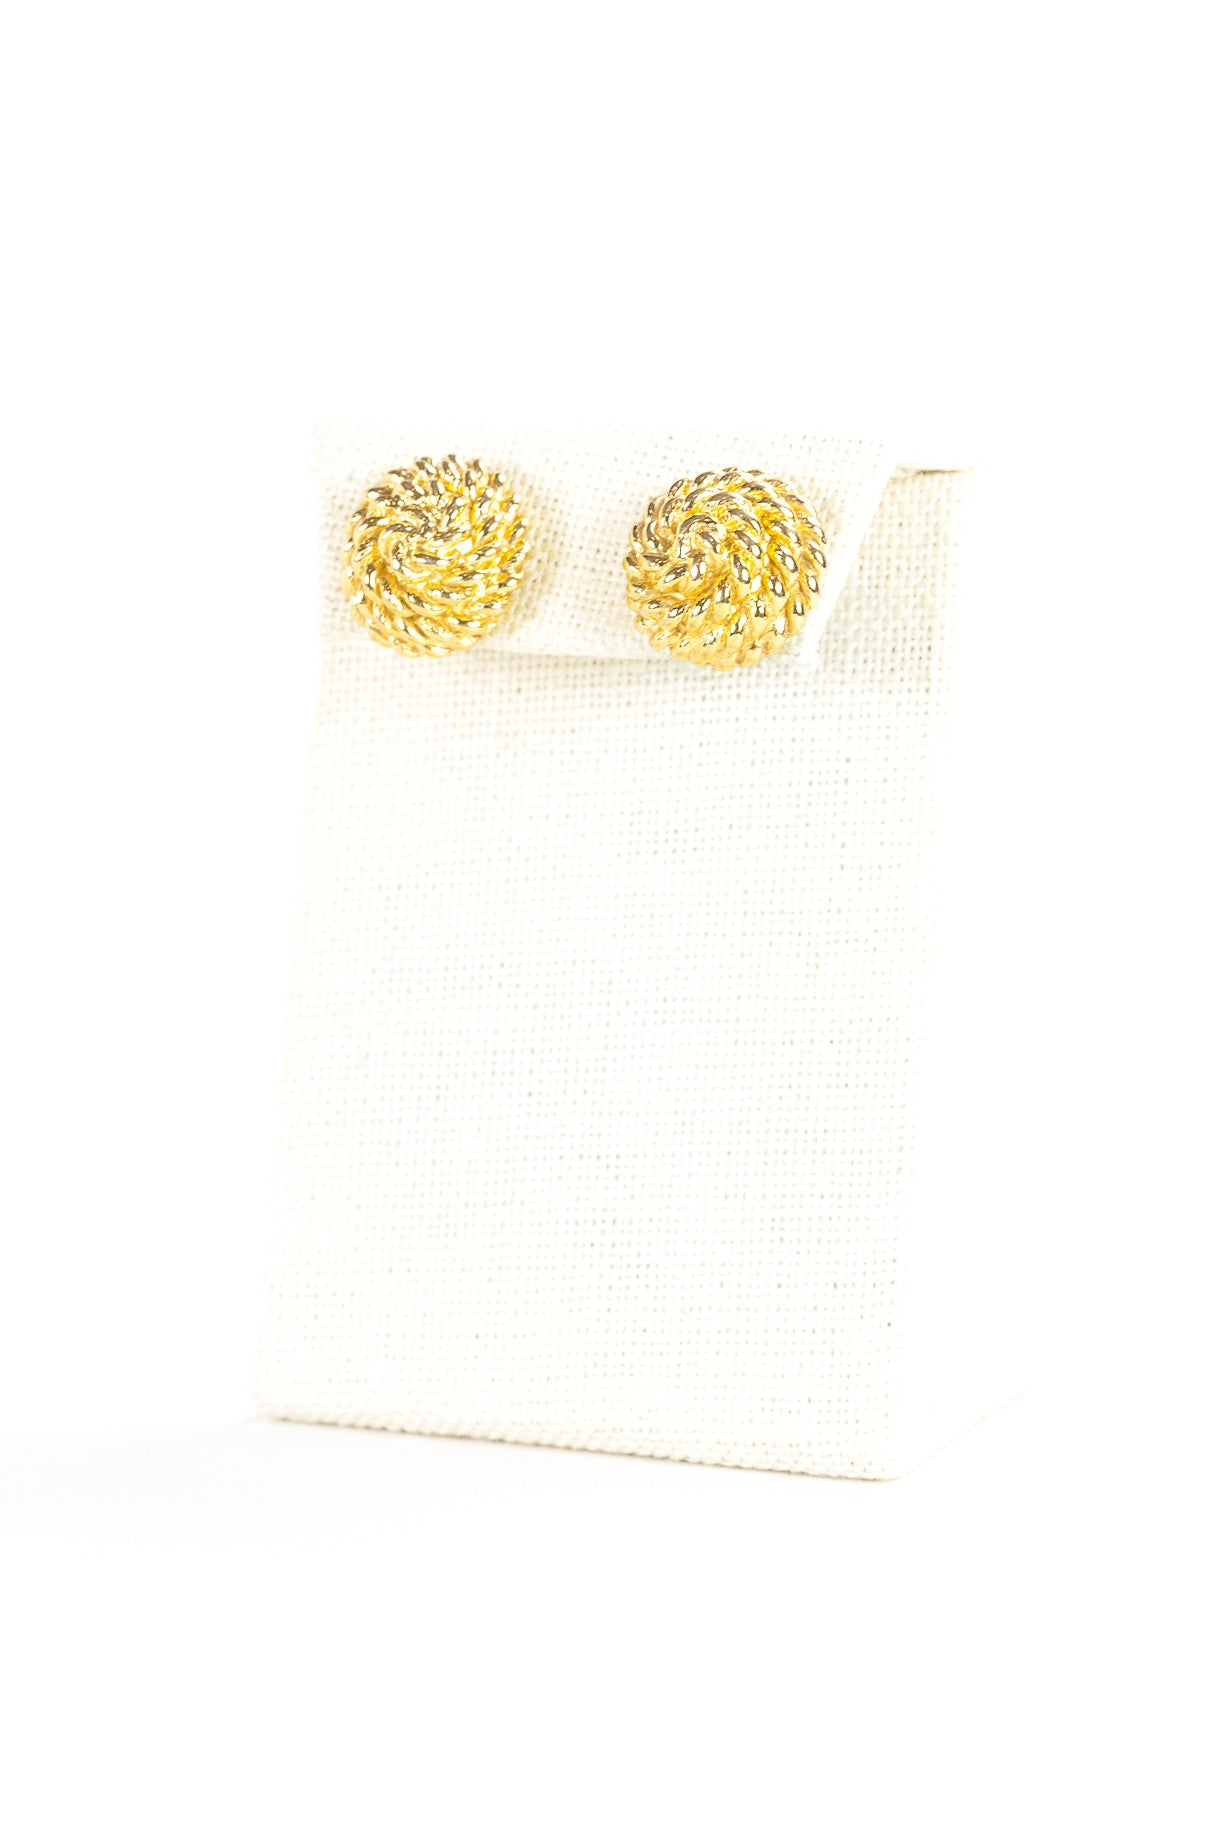 70's__Monet__Gold Rope Knot Earrings